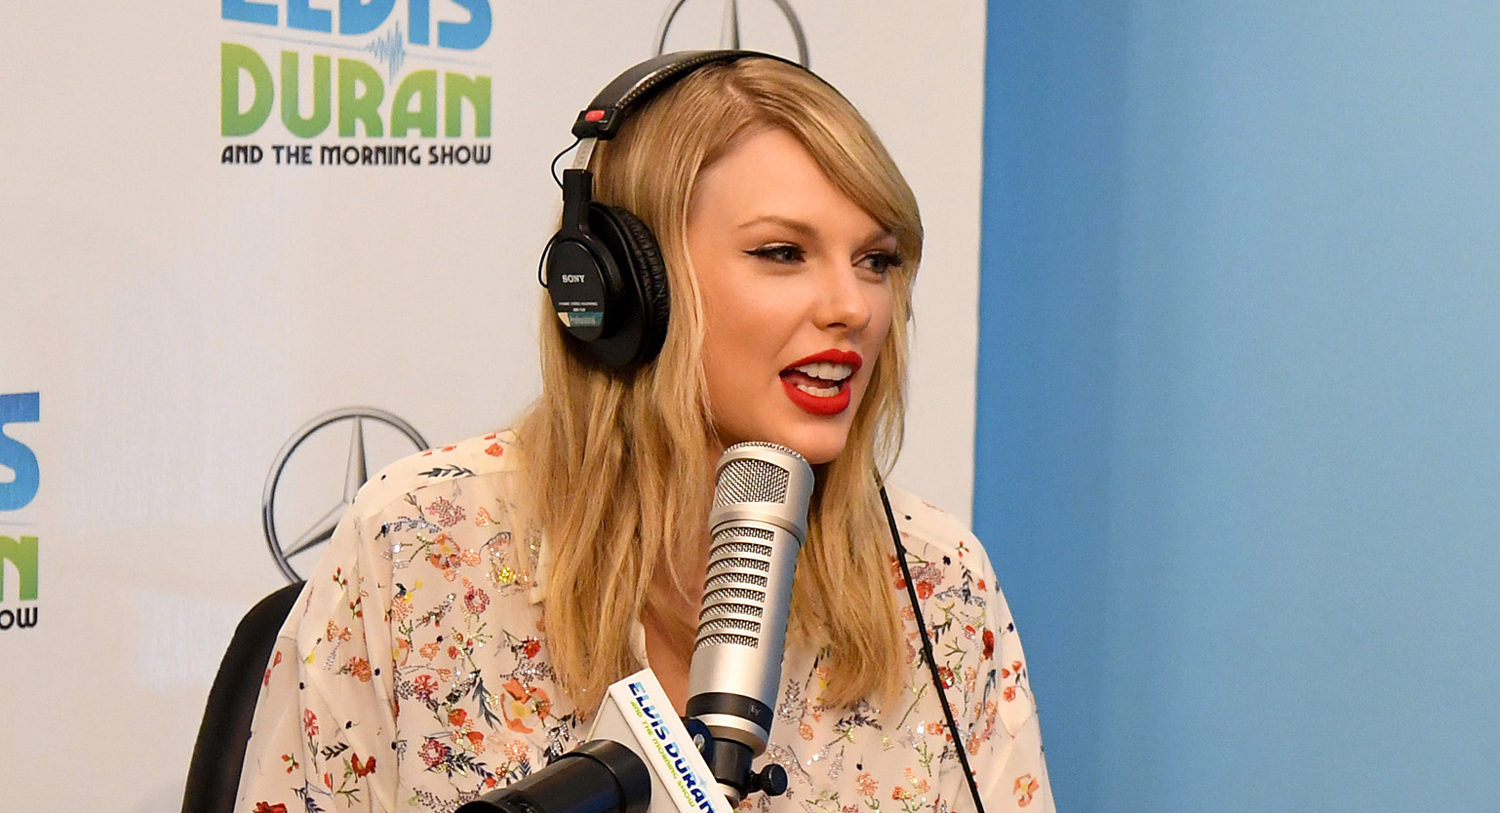 Taylor Swift Talks About Scooter Braun Feud in Elvis Duran Interview